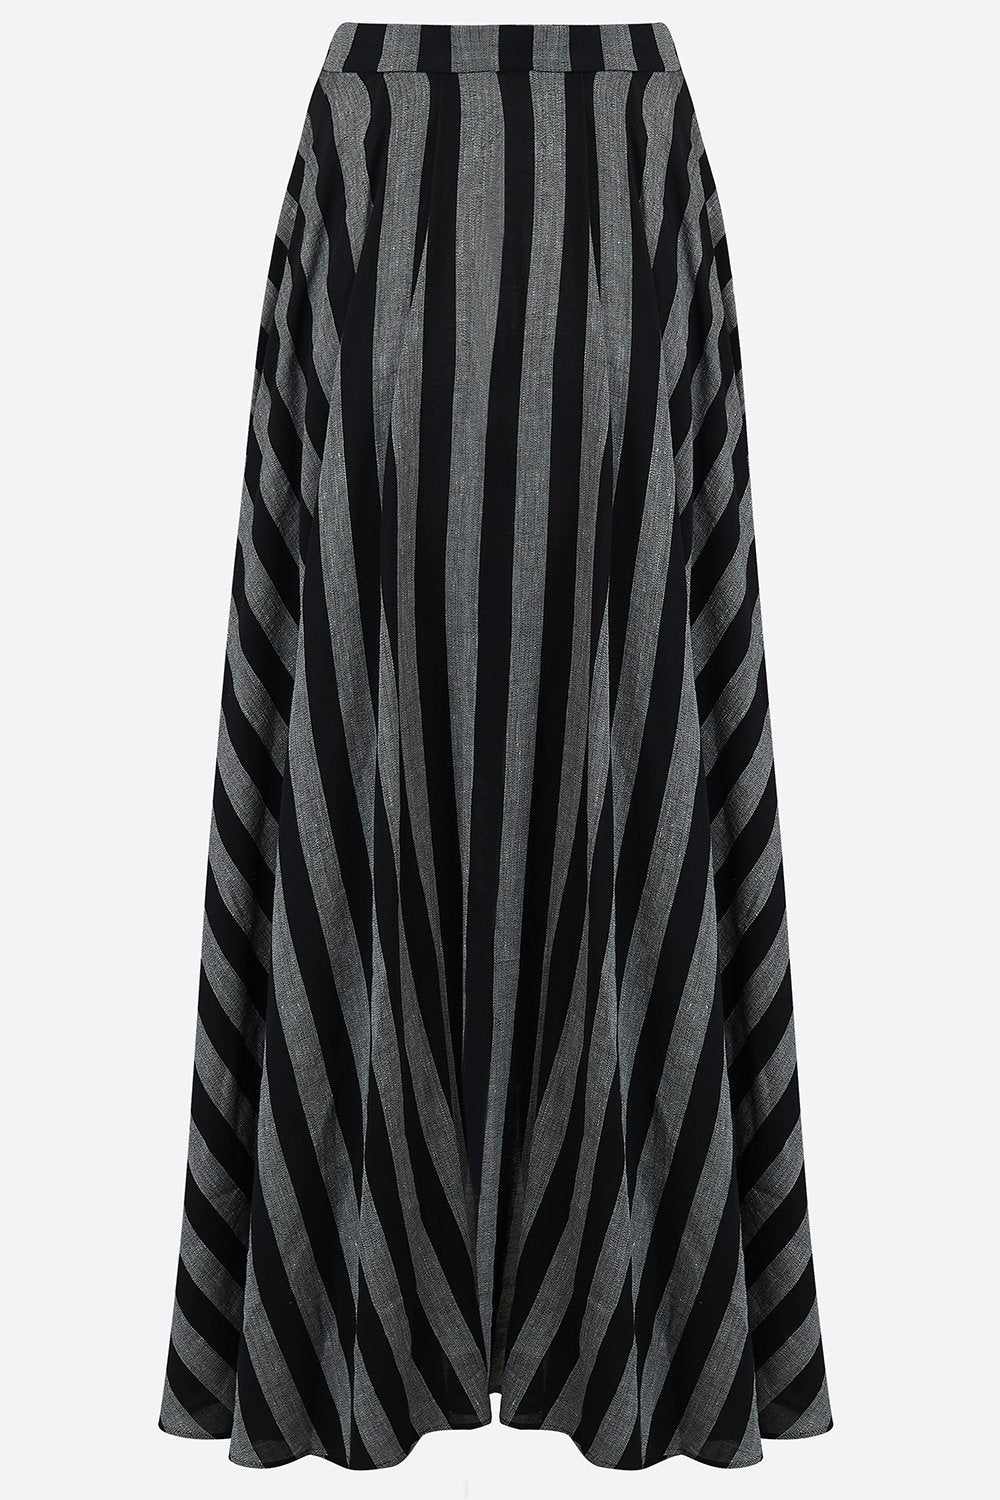 ROXANA SKIRT IN STRIPE-womenswear-A Child Of The Jago